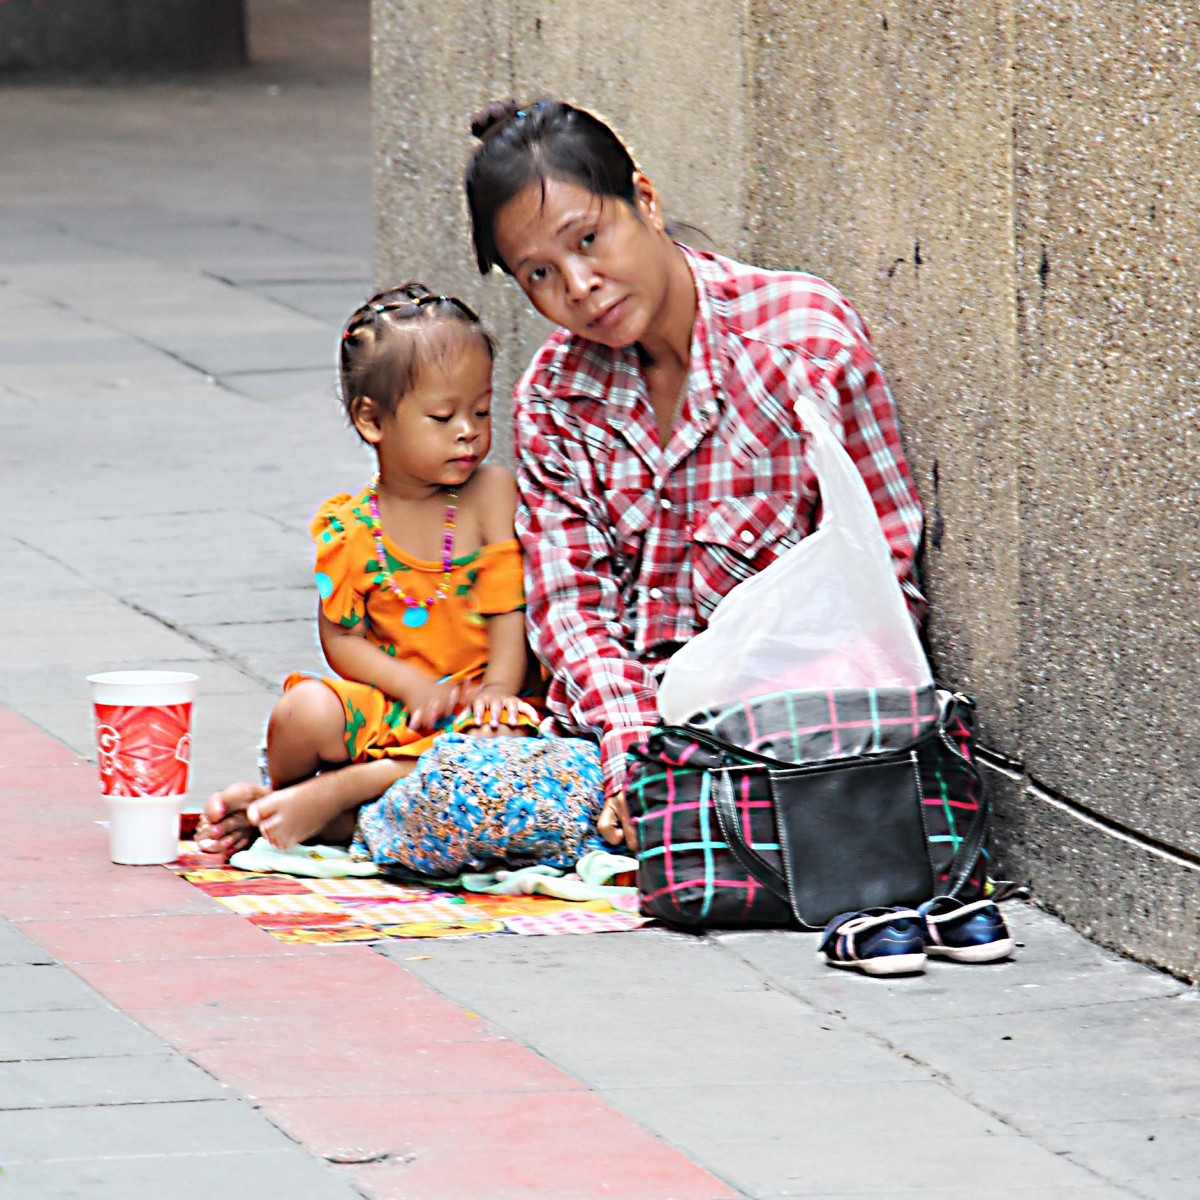 A young mother and child reduced to begging in the streets of Bangkok